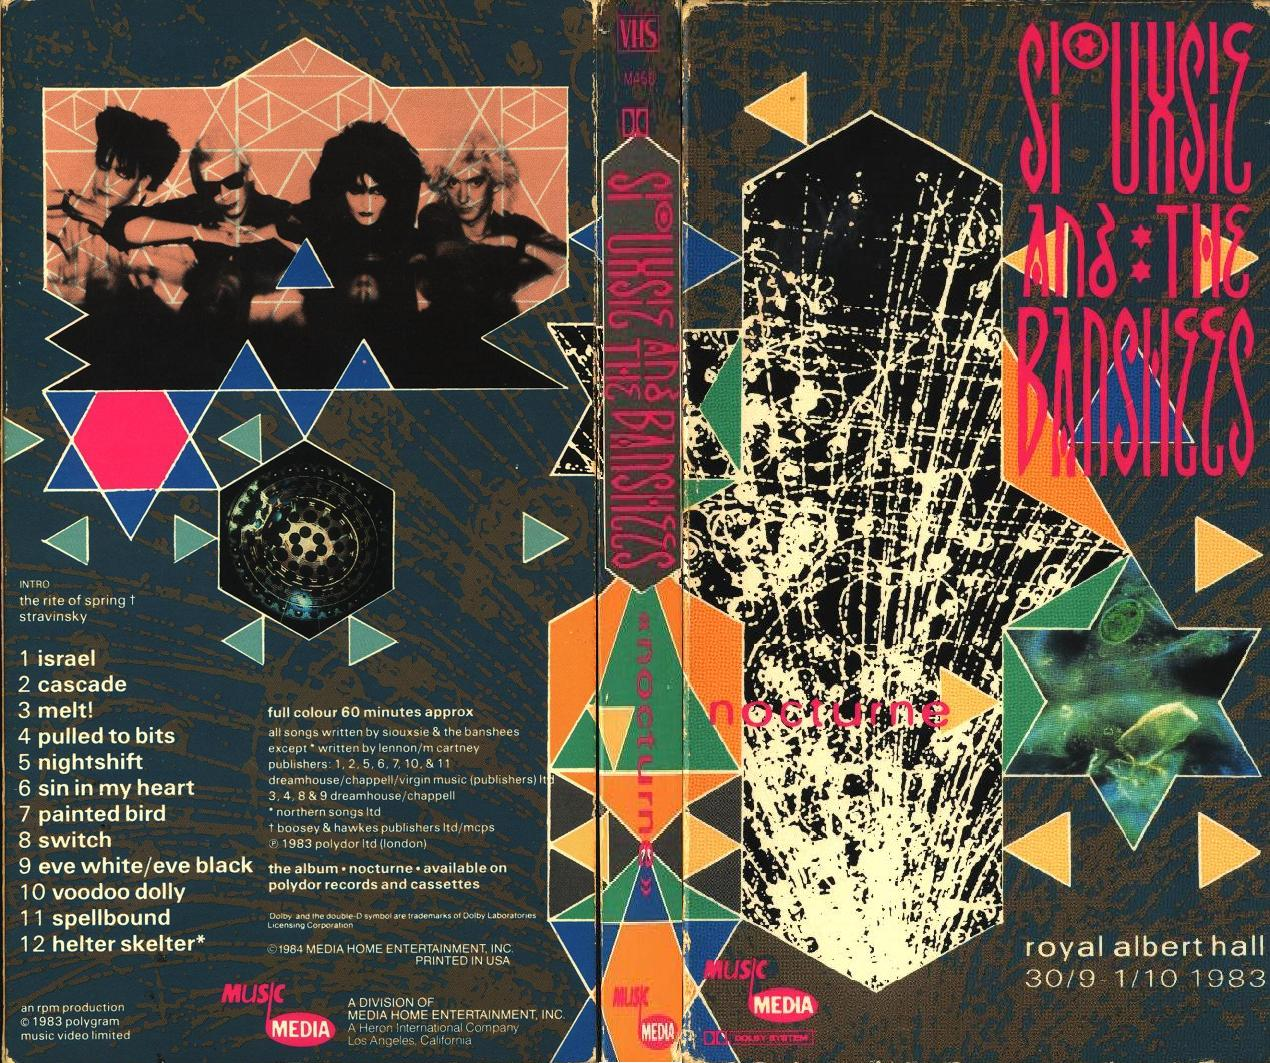 siouxsie and the banshees nocturne